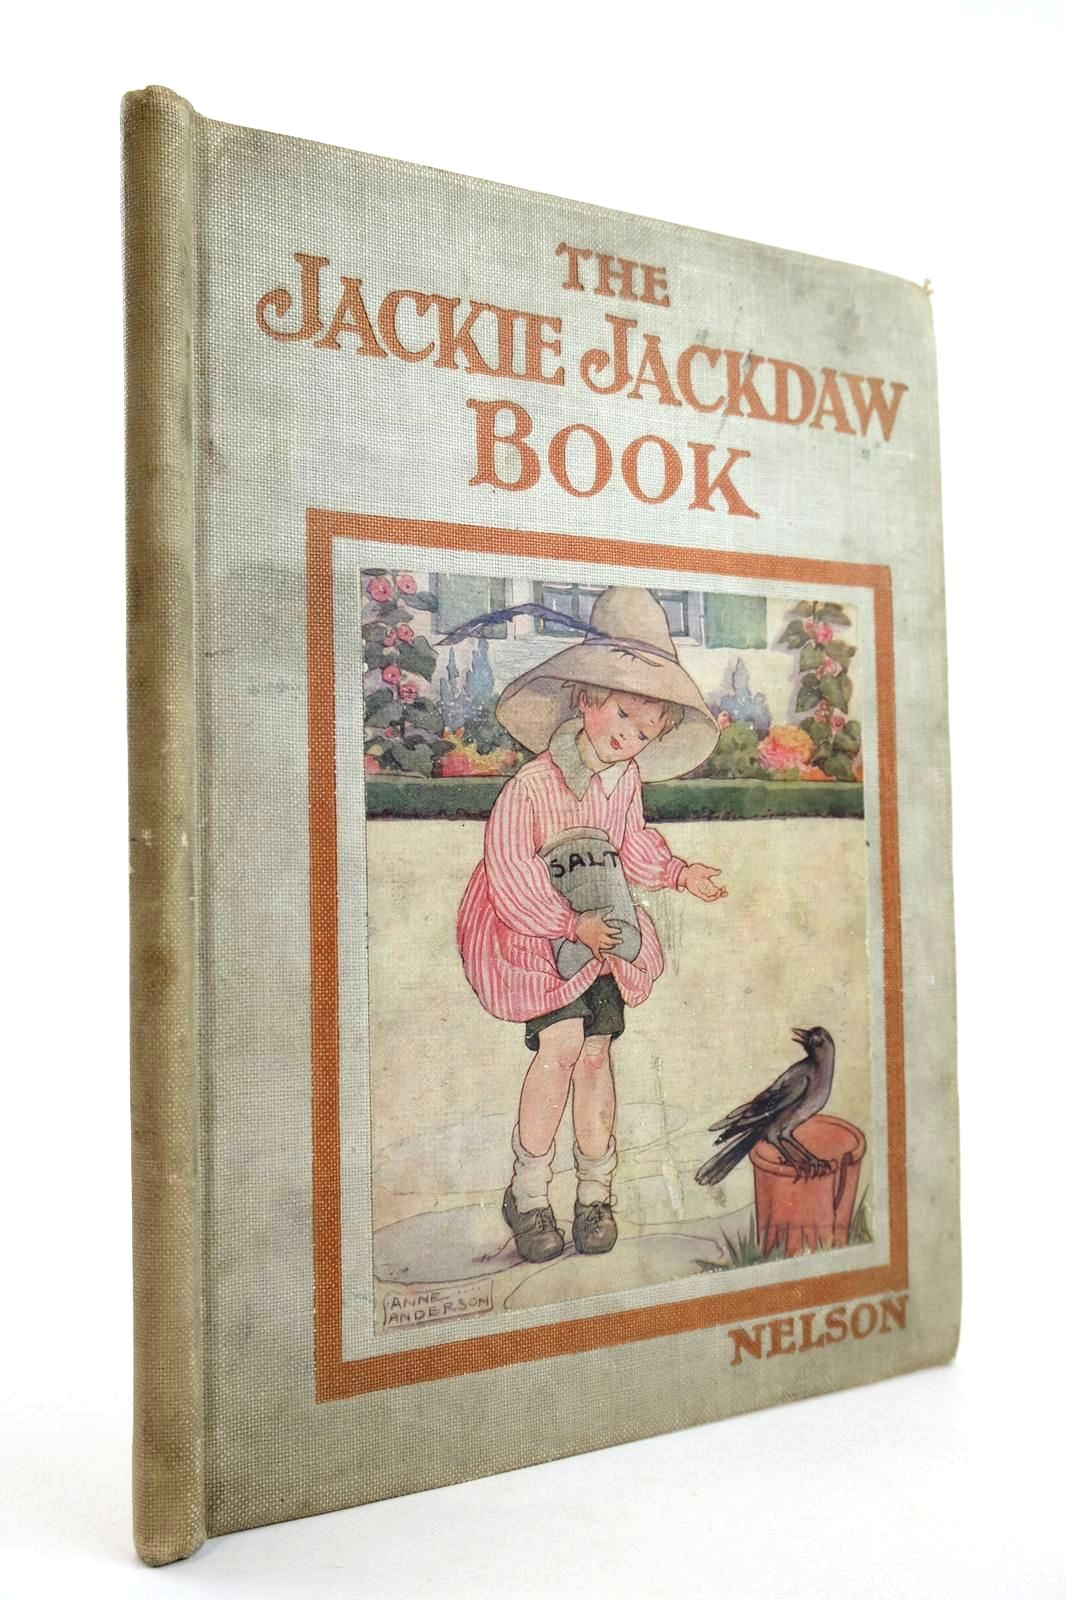 Photo of THE JACKIE JACKDAW BOOK illustrated by Anderson, Anne published by Thomas Nelson & Sons (STOCK CODE: 2132543)  for sale by Stella & Rose's Books